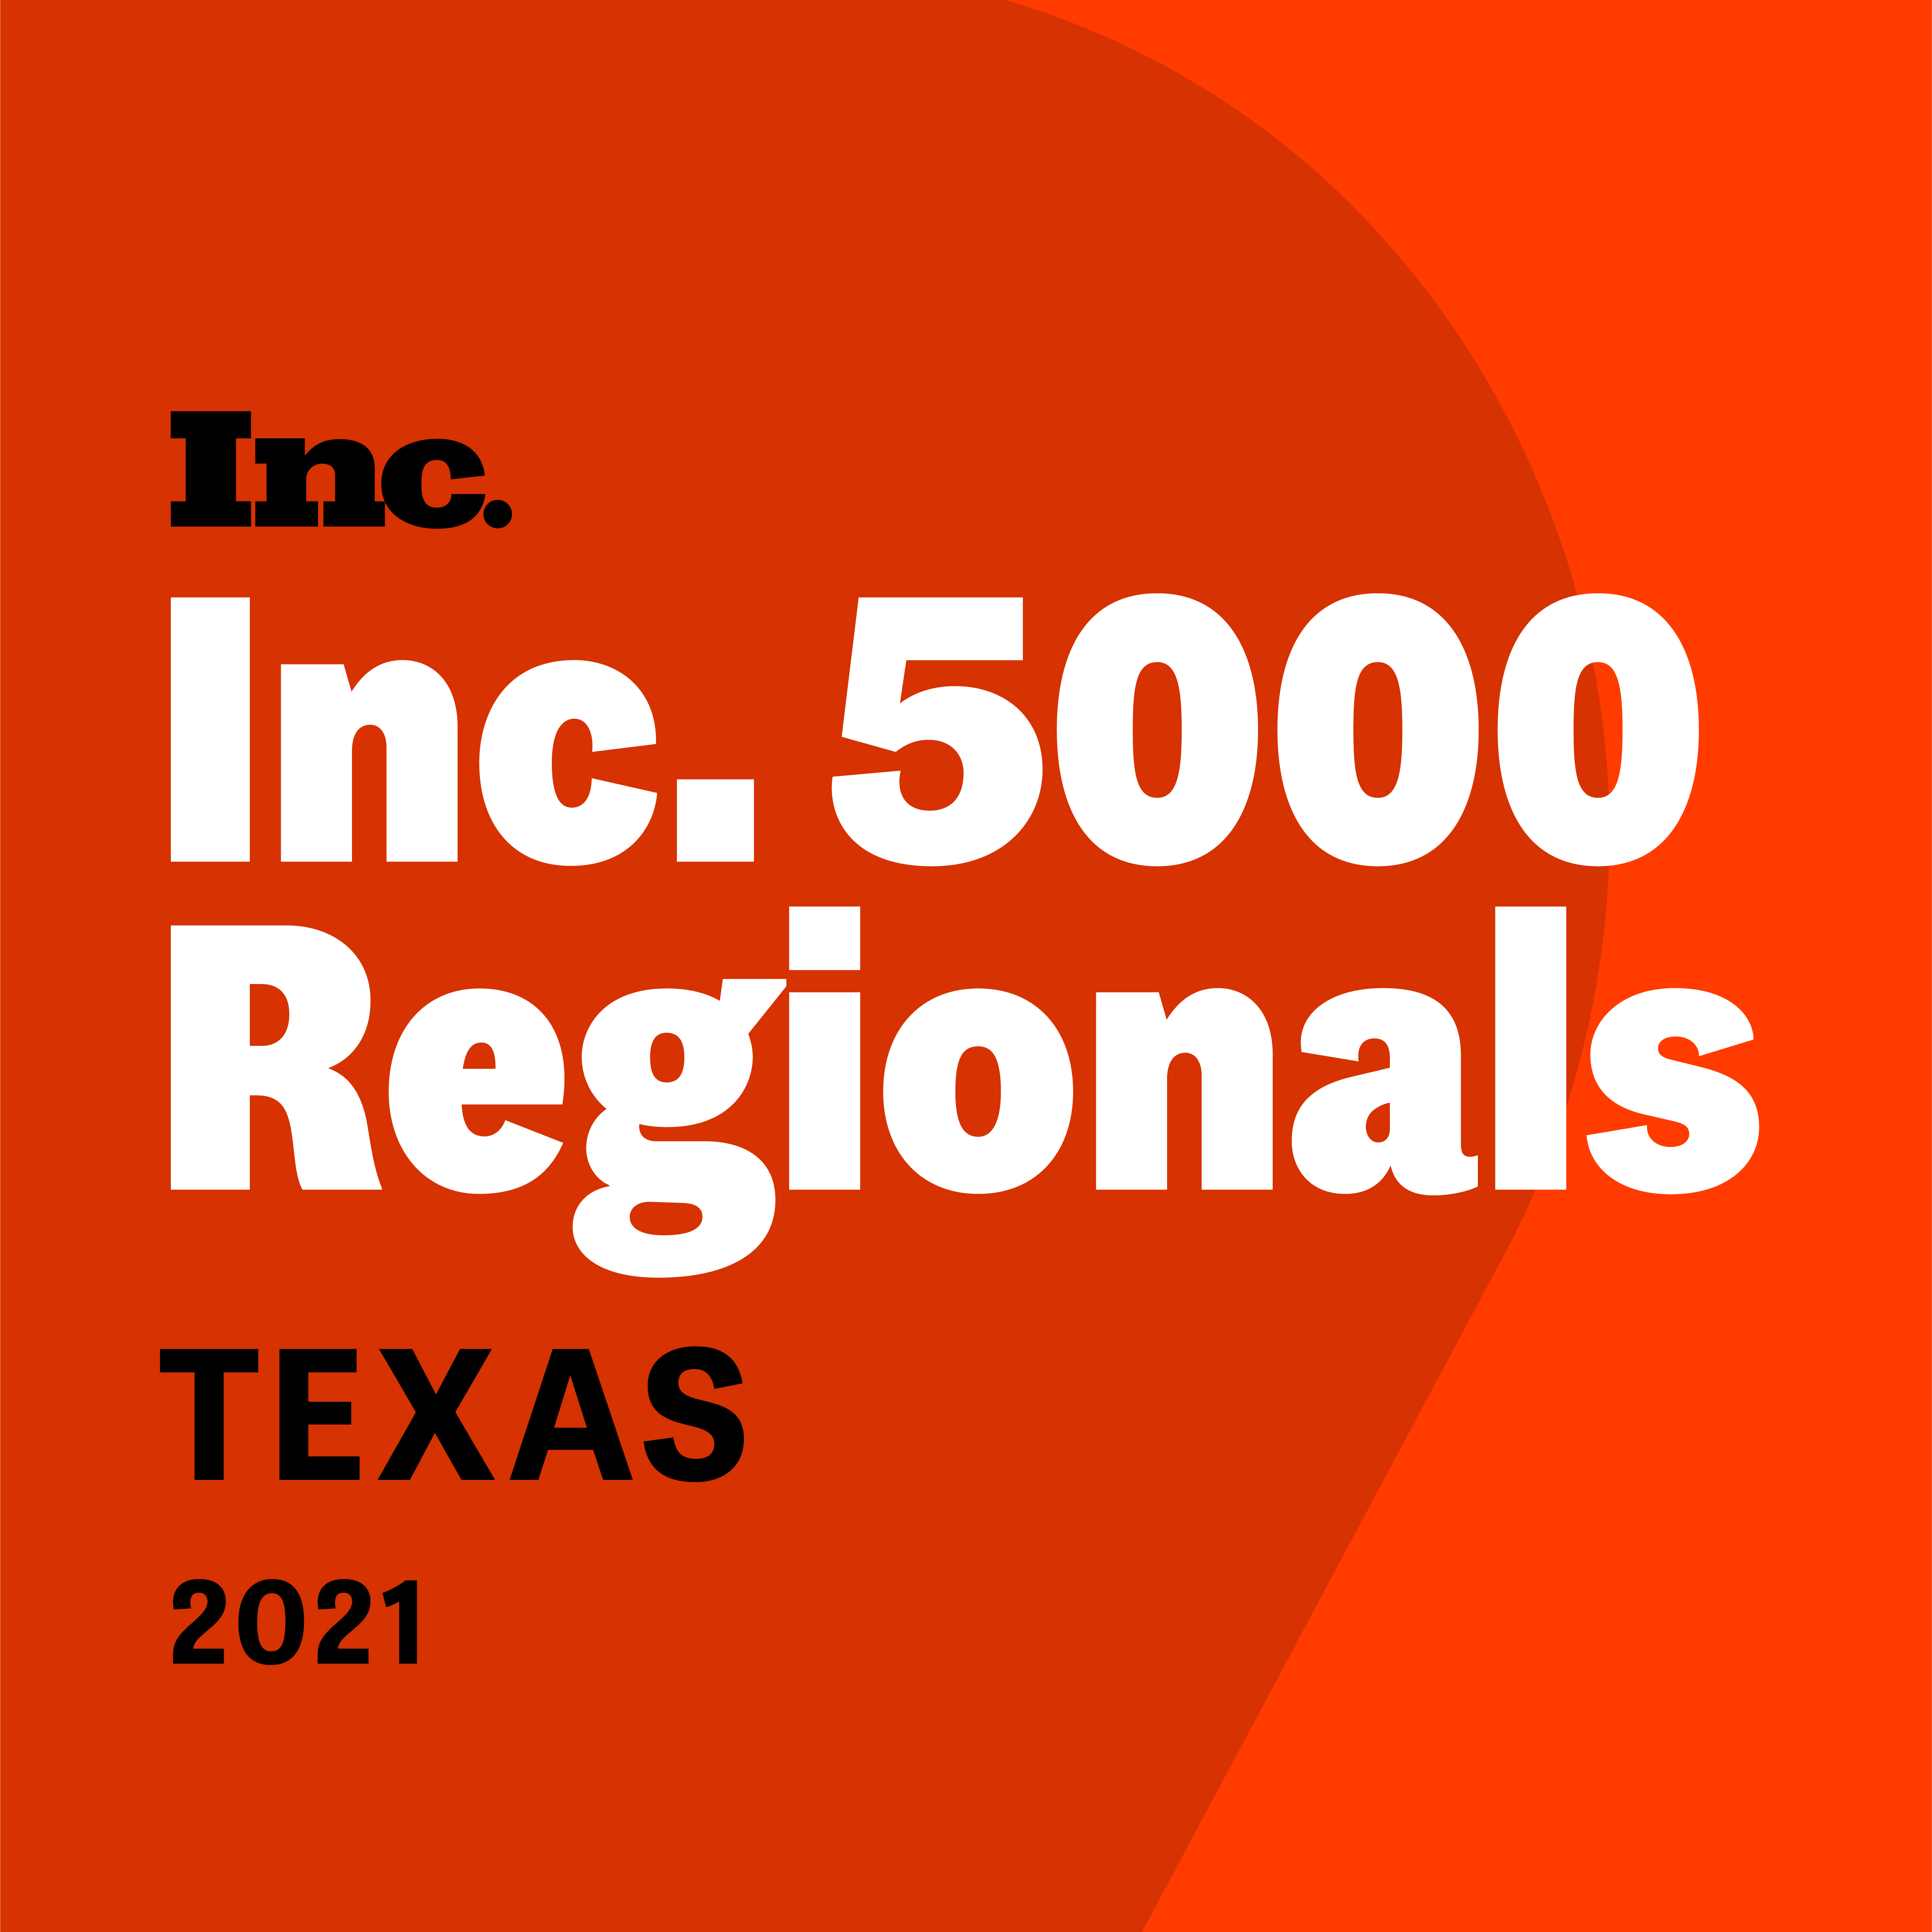 AcctTwo, Accounting Solutions Experts, Rank No. 119 on Inc. 5000 Texas List